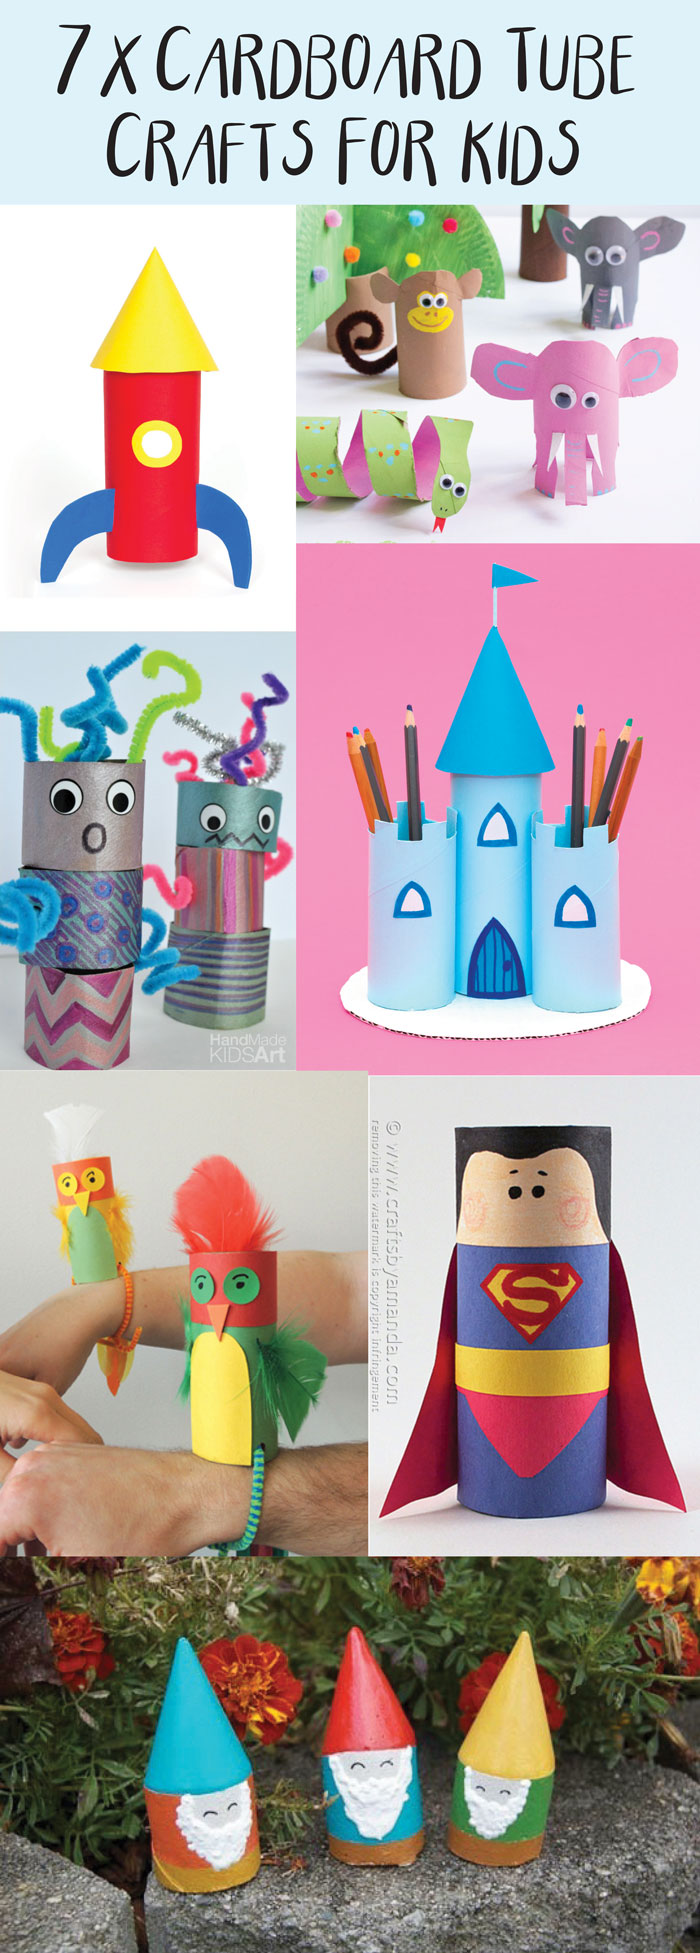 7 great kids craft ideas to make from cardboard tubes! I love crafts made with toilet roll tubes as they are so fun and simple and everyone has them already in their homes!